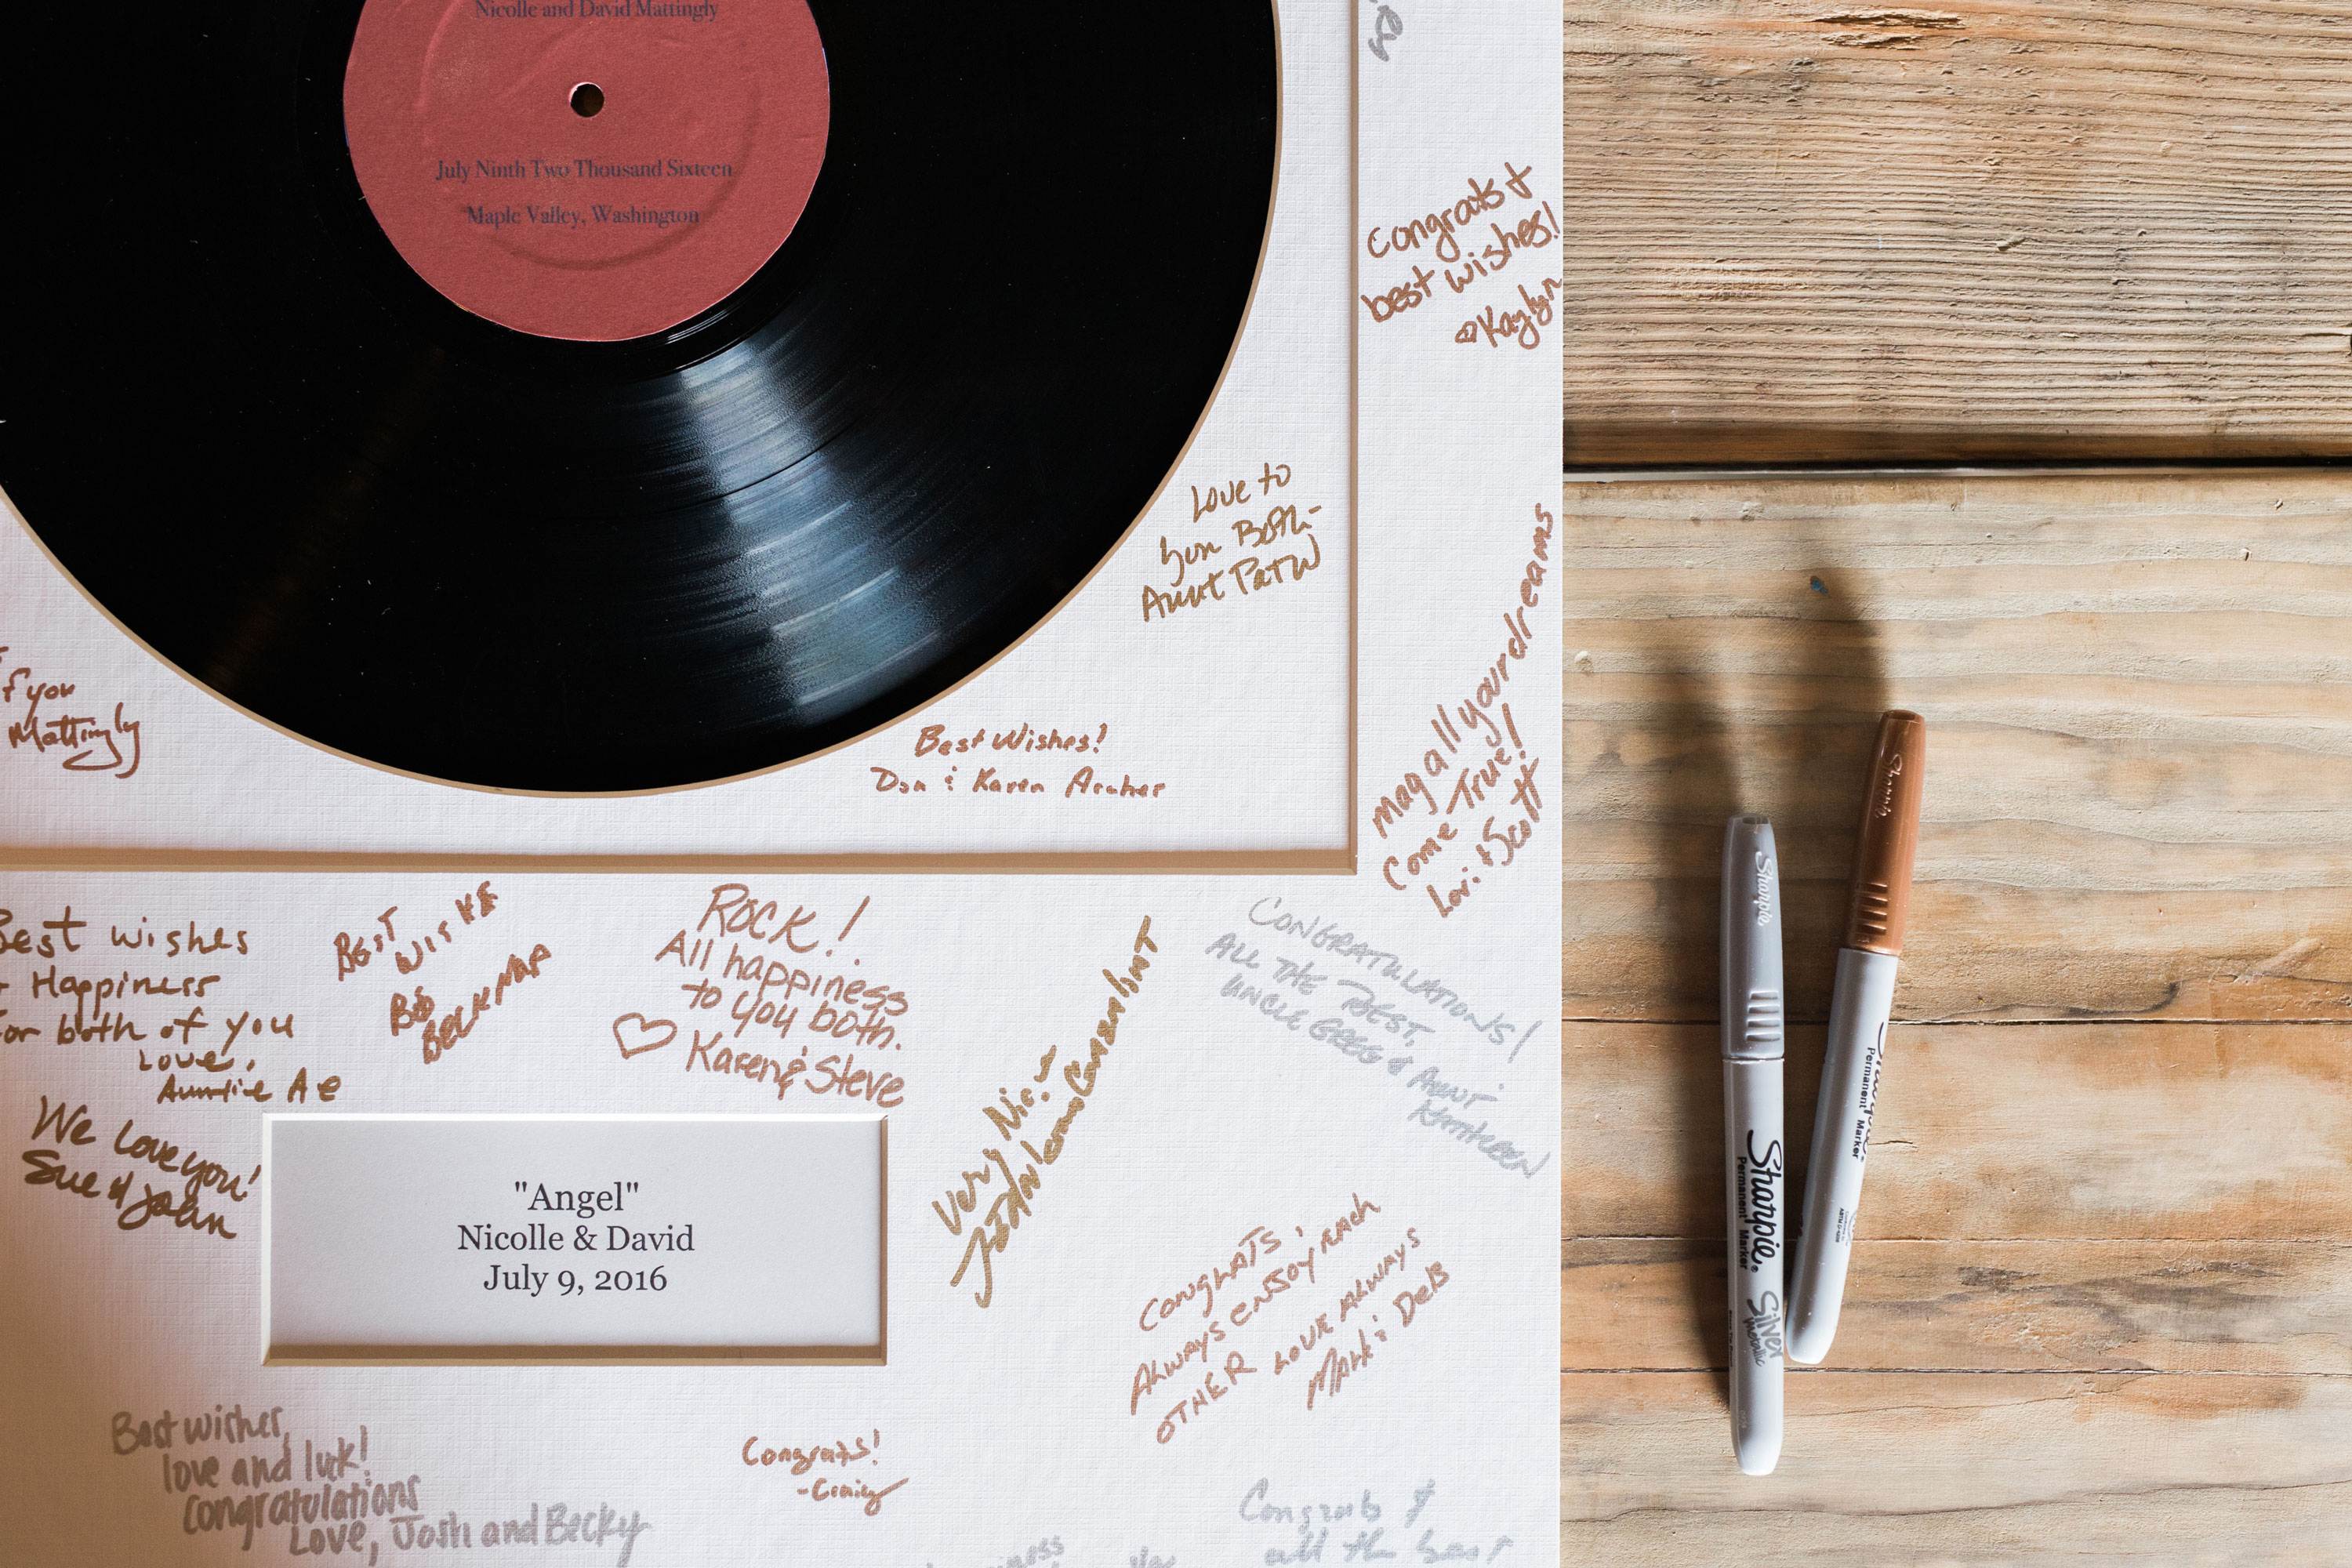 nicolle-and-david-wedding-guest-book-record